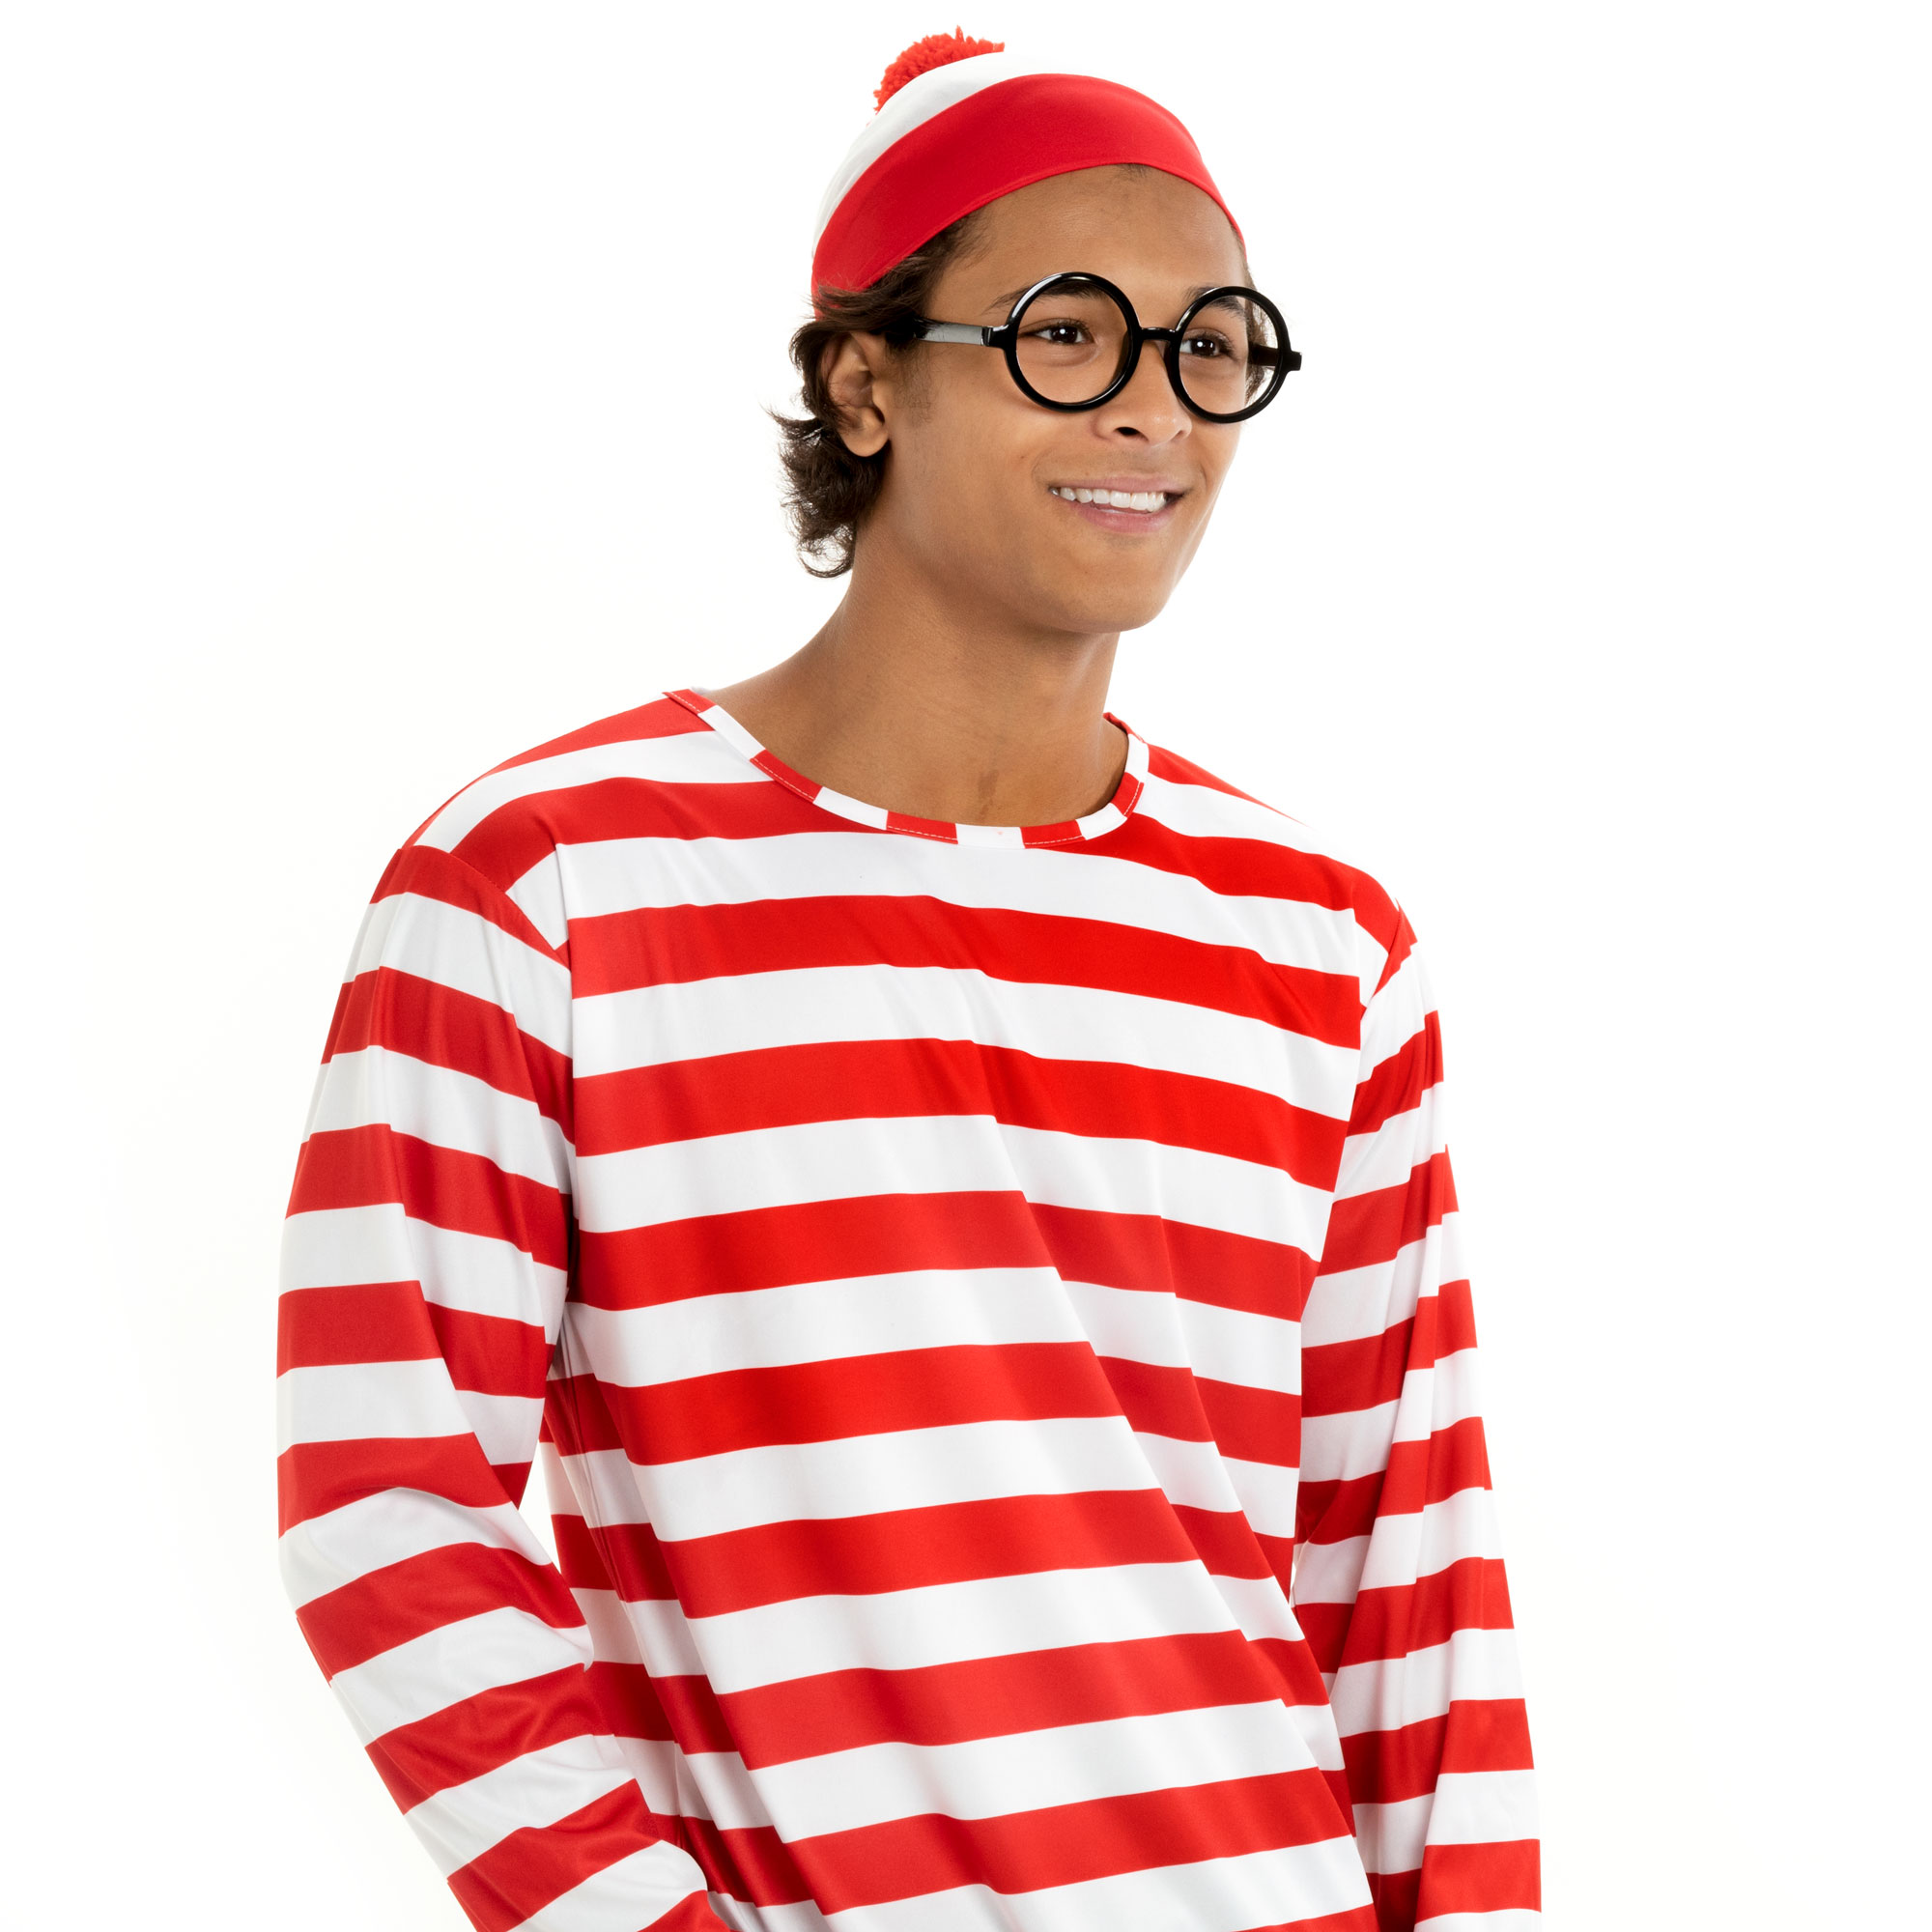 Where's Wally Halloween Costume - Men's Cosplay Outfit, L